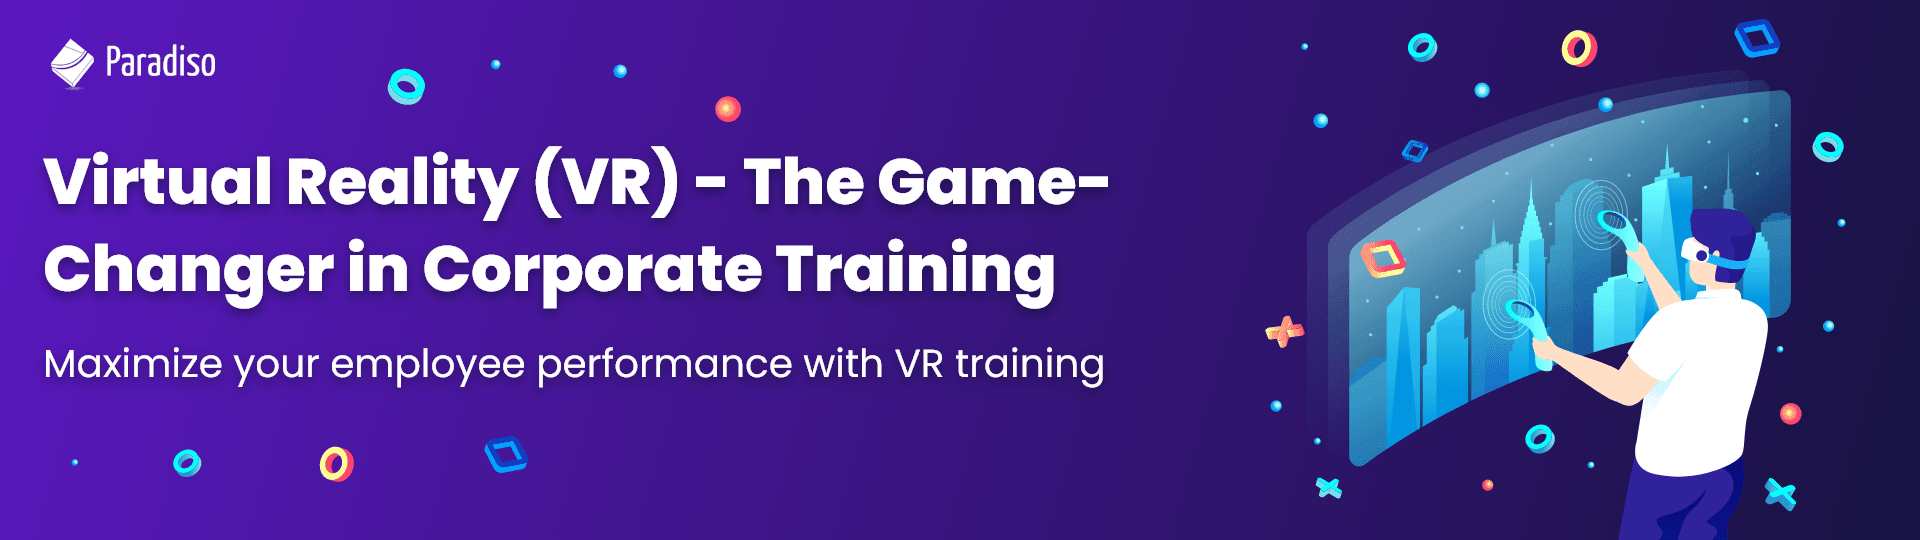 How is Virtual reality (VR) training Used in Corporate Training?